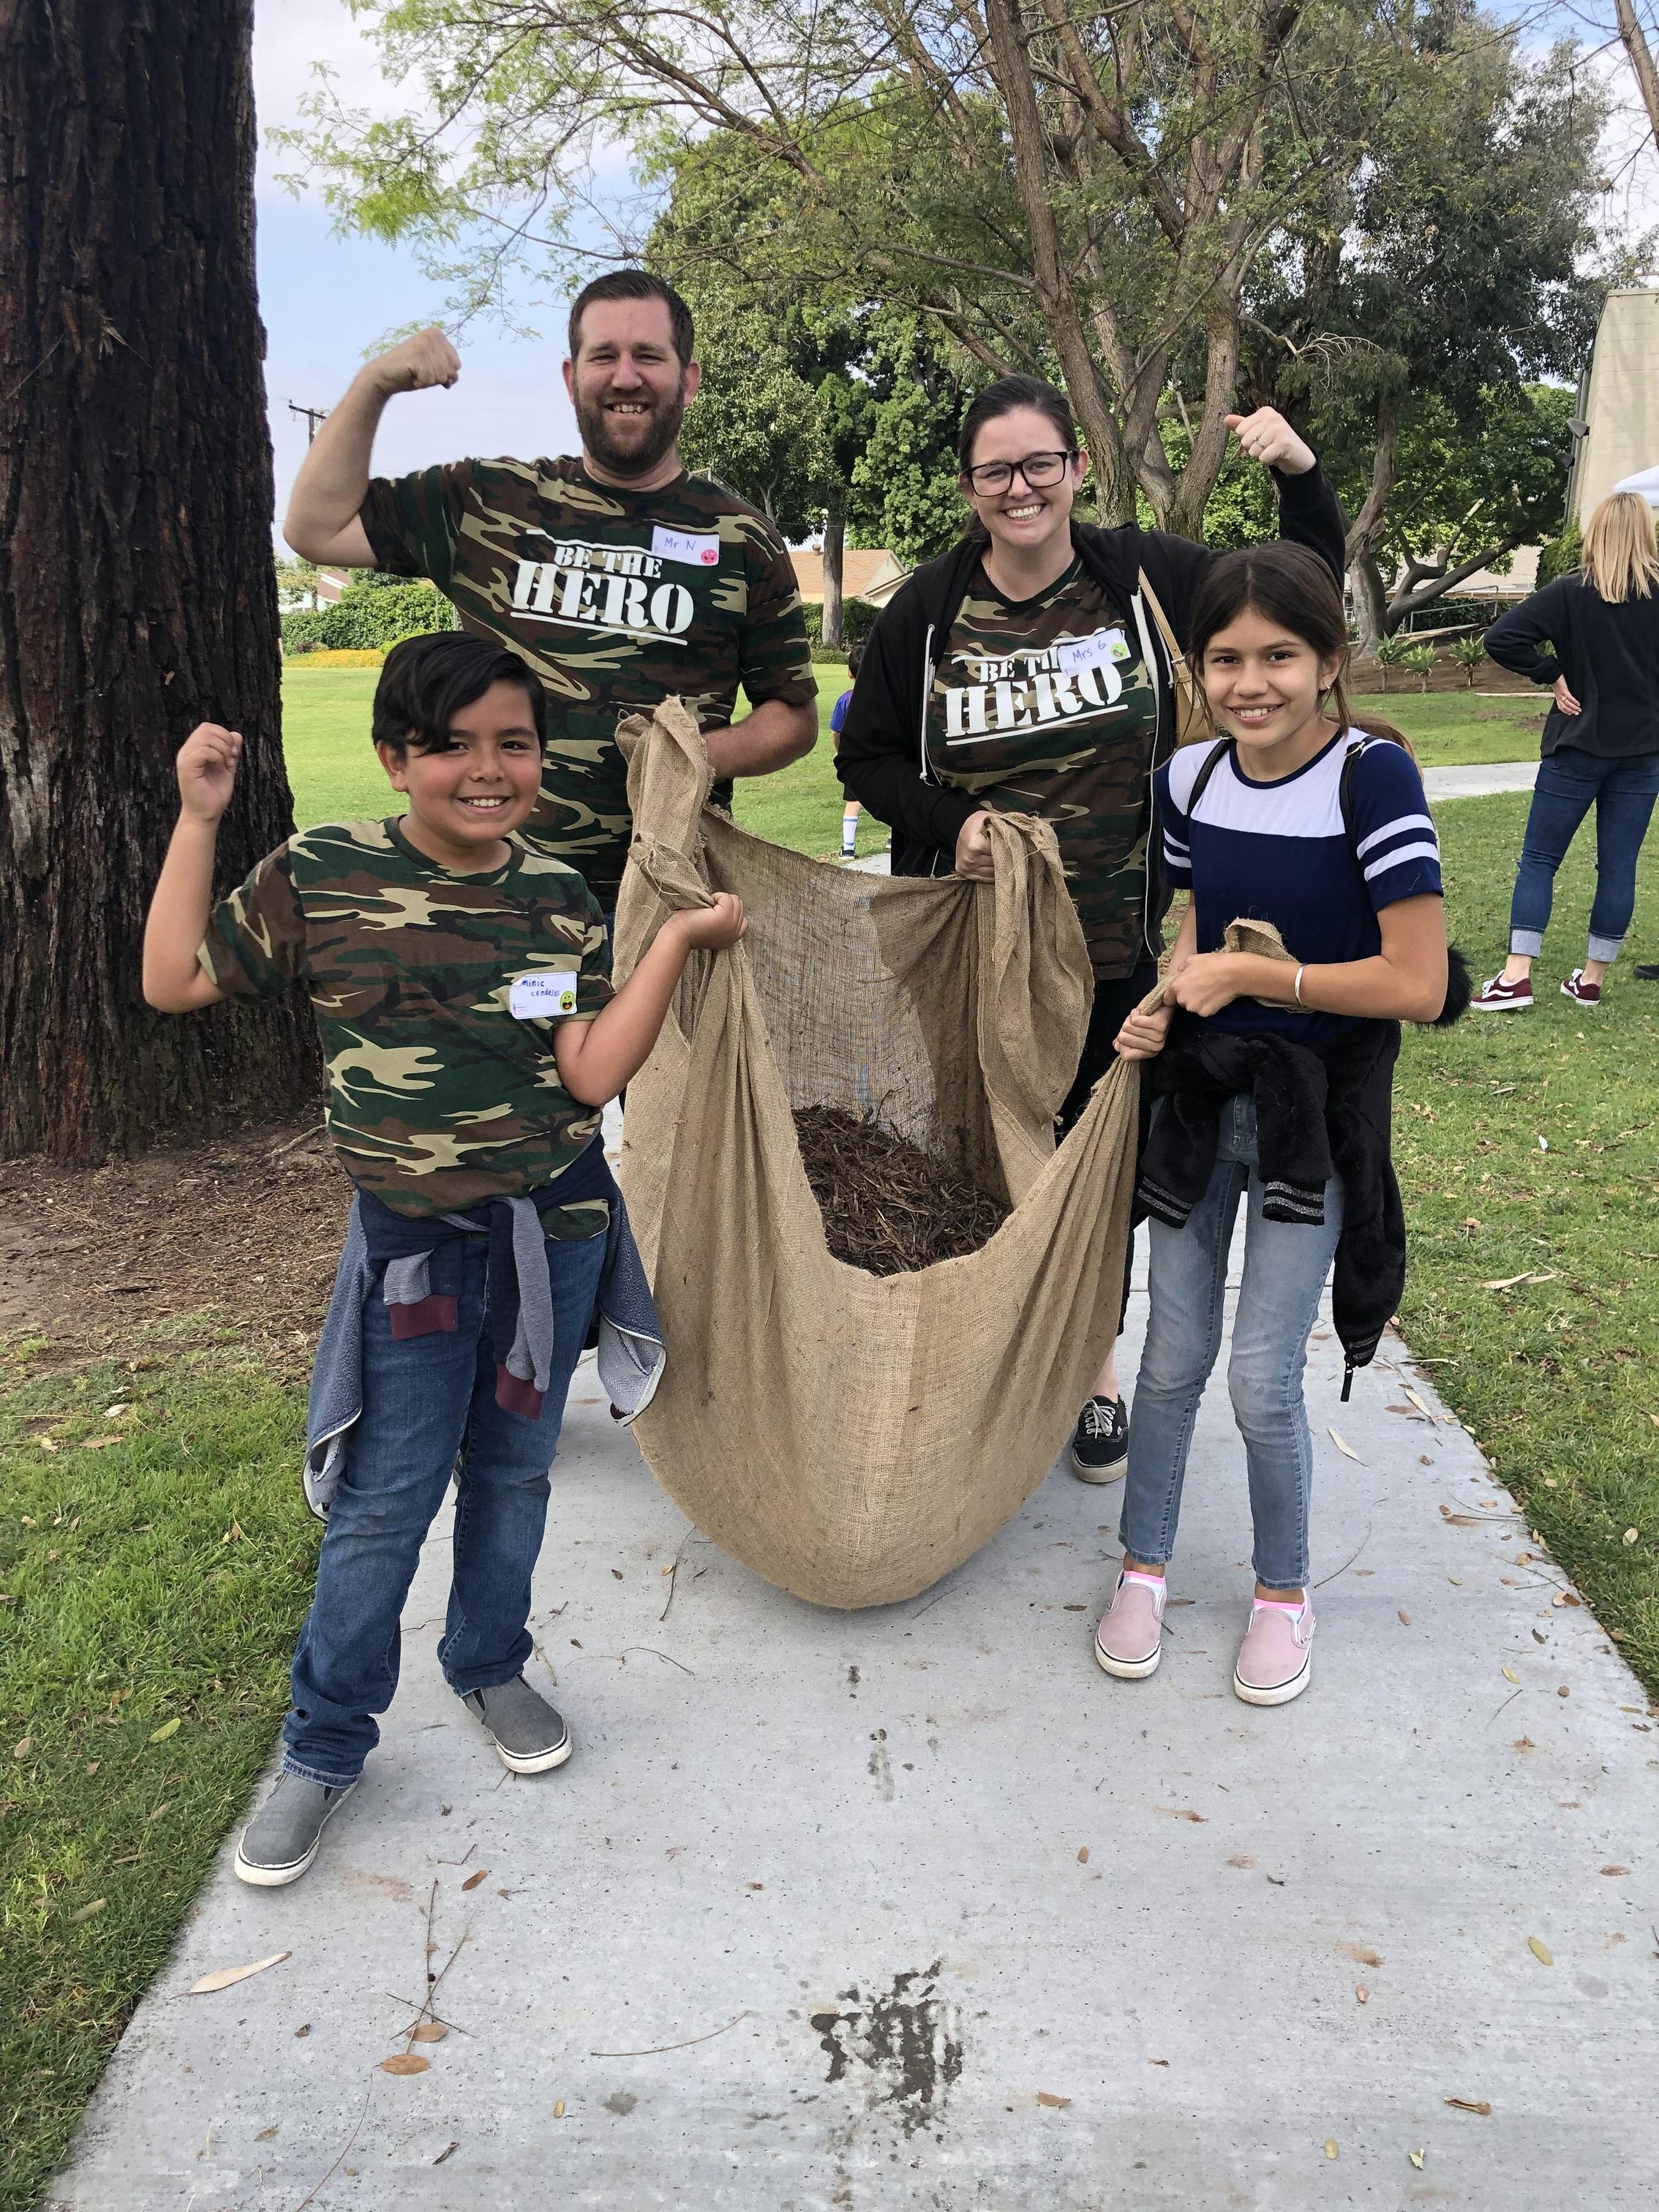 Four Ocean View students and teachers are carrying mulch to help clean up Parnell Park in Whittier.